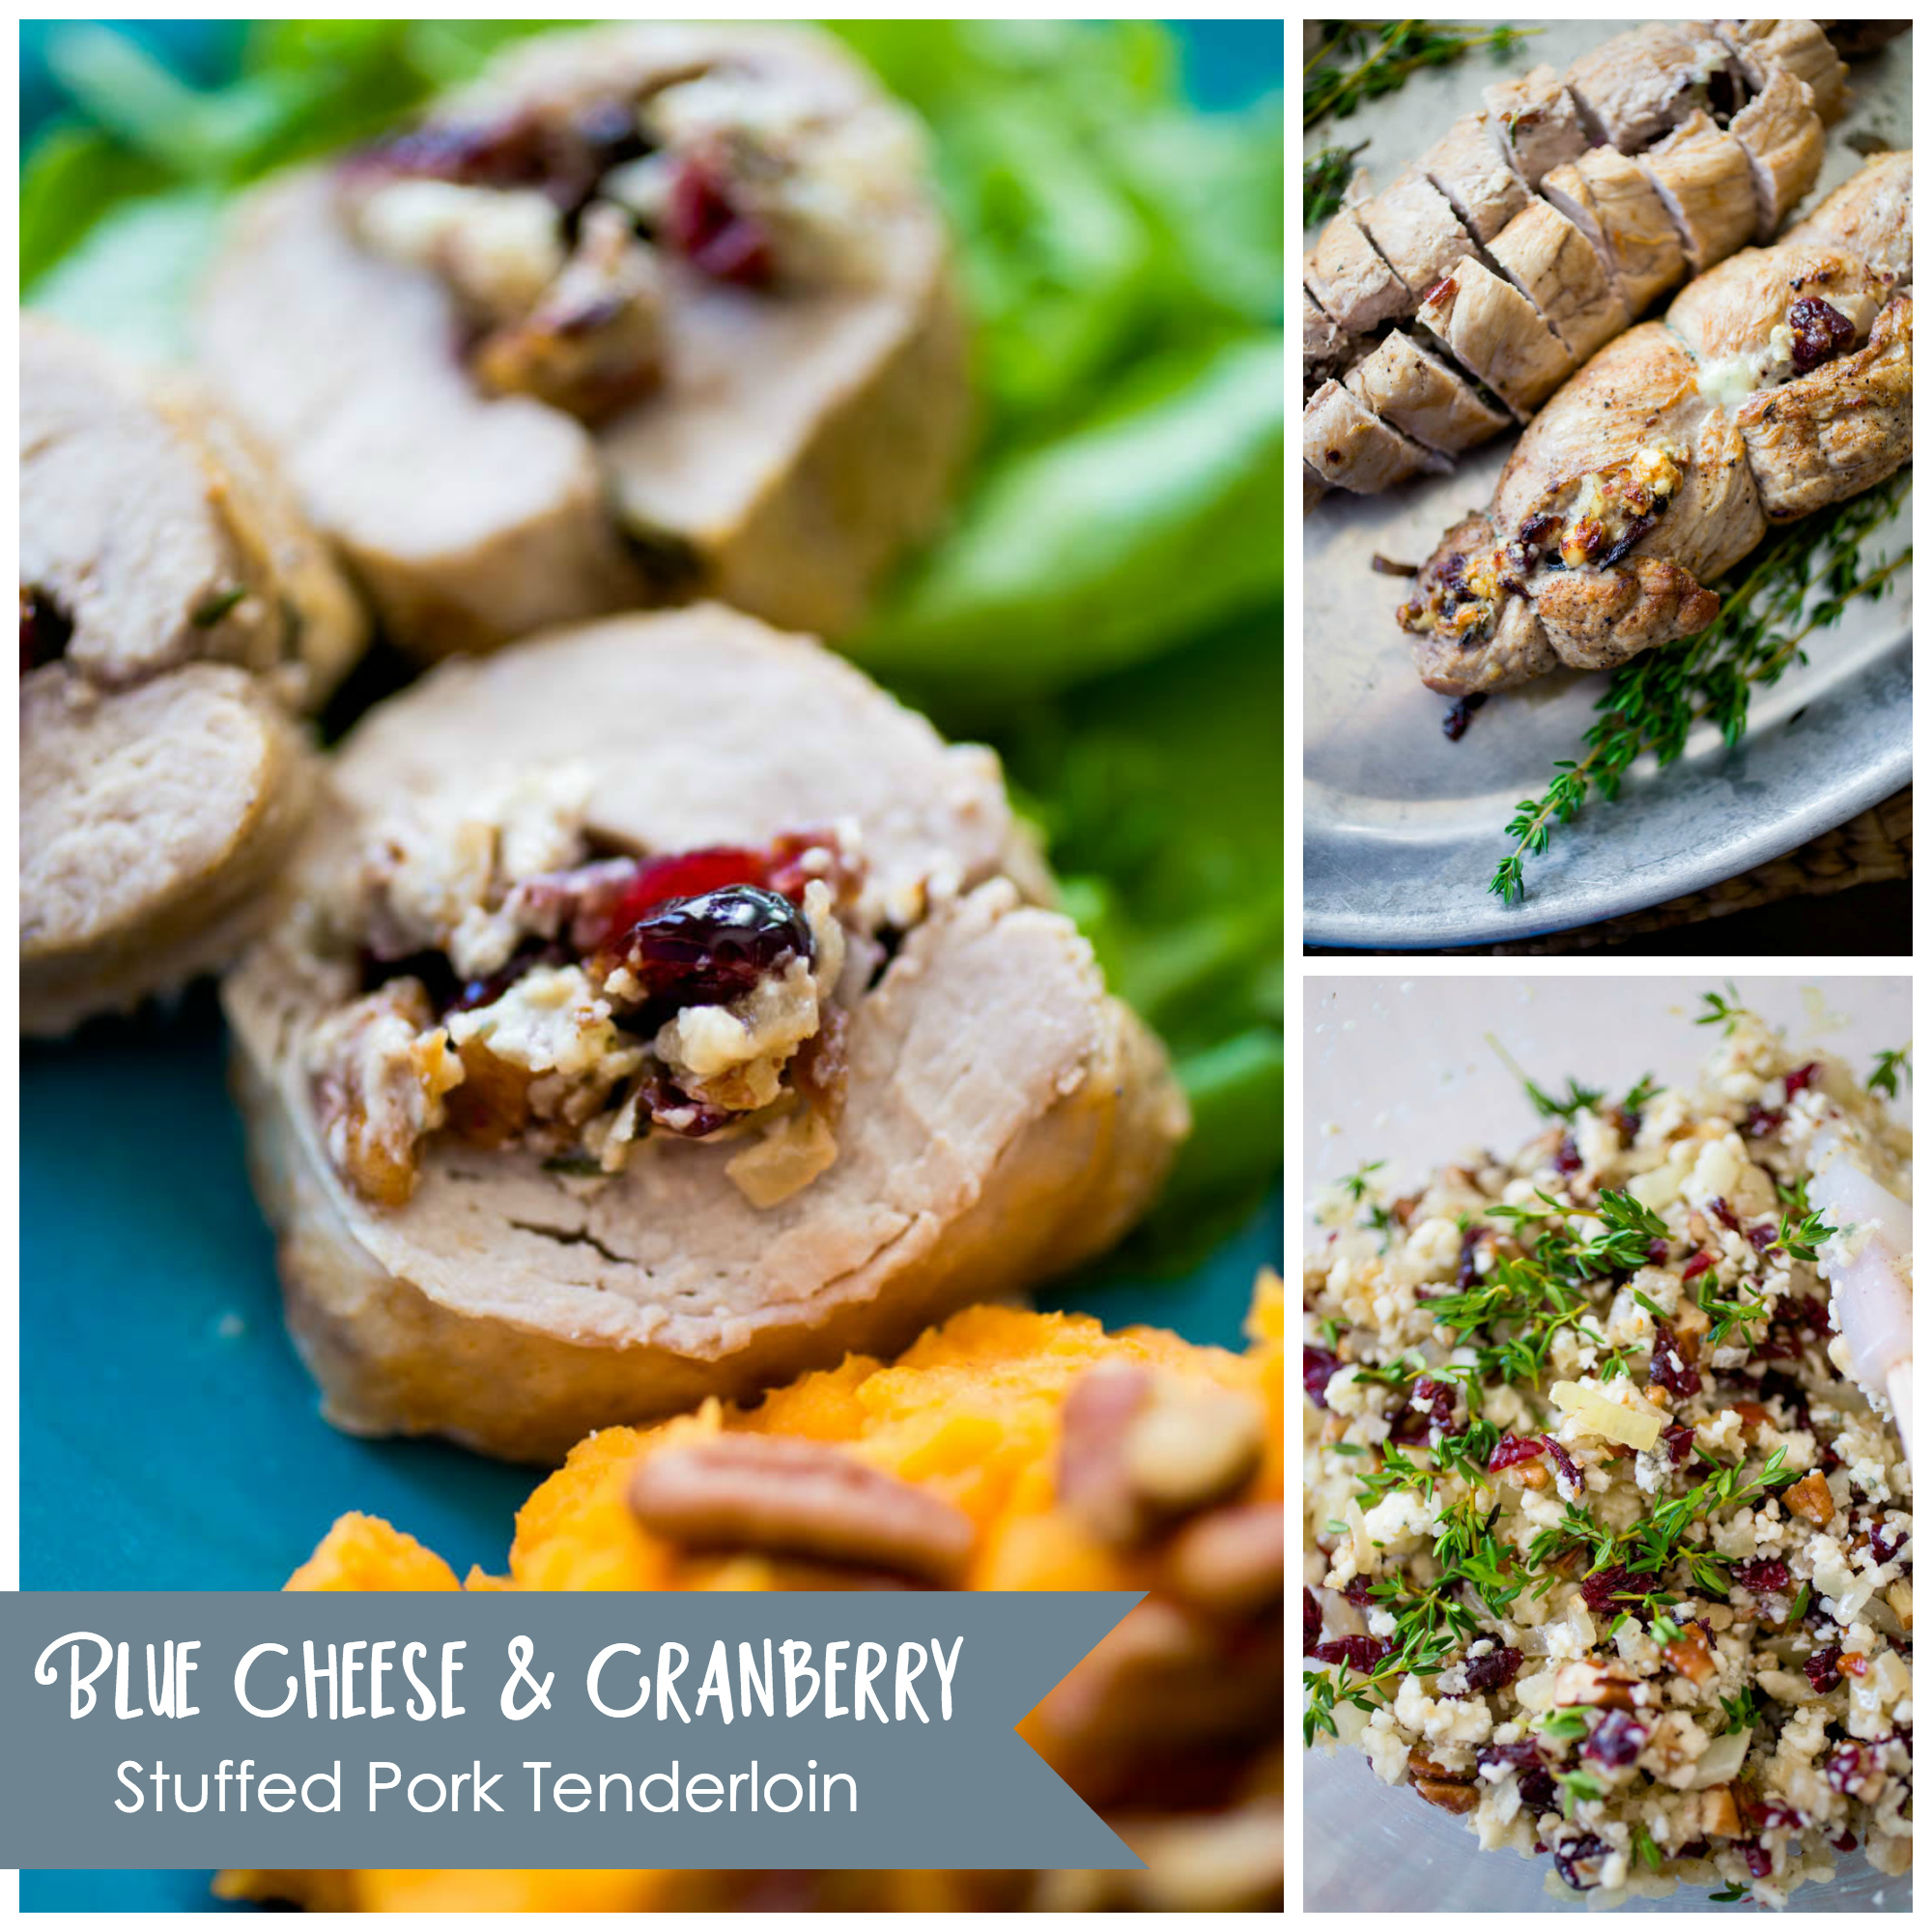 Blue cheese and cranberry stuffed pork tenderloin